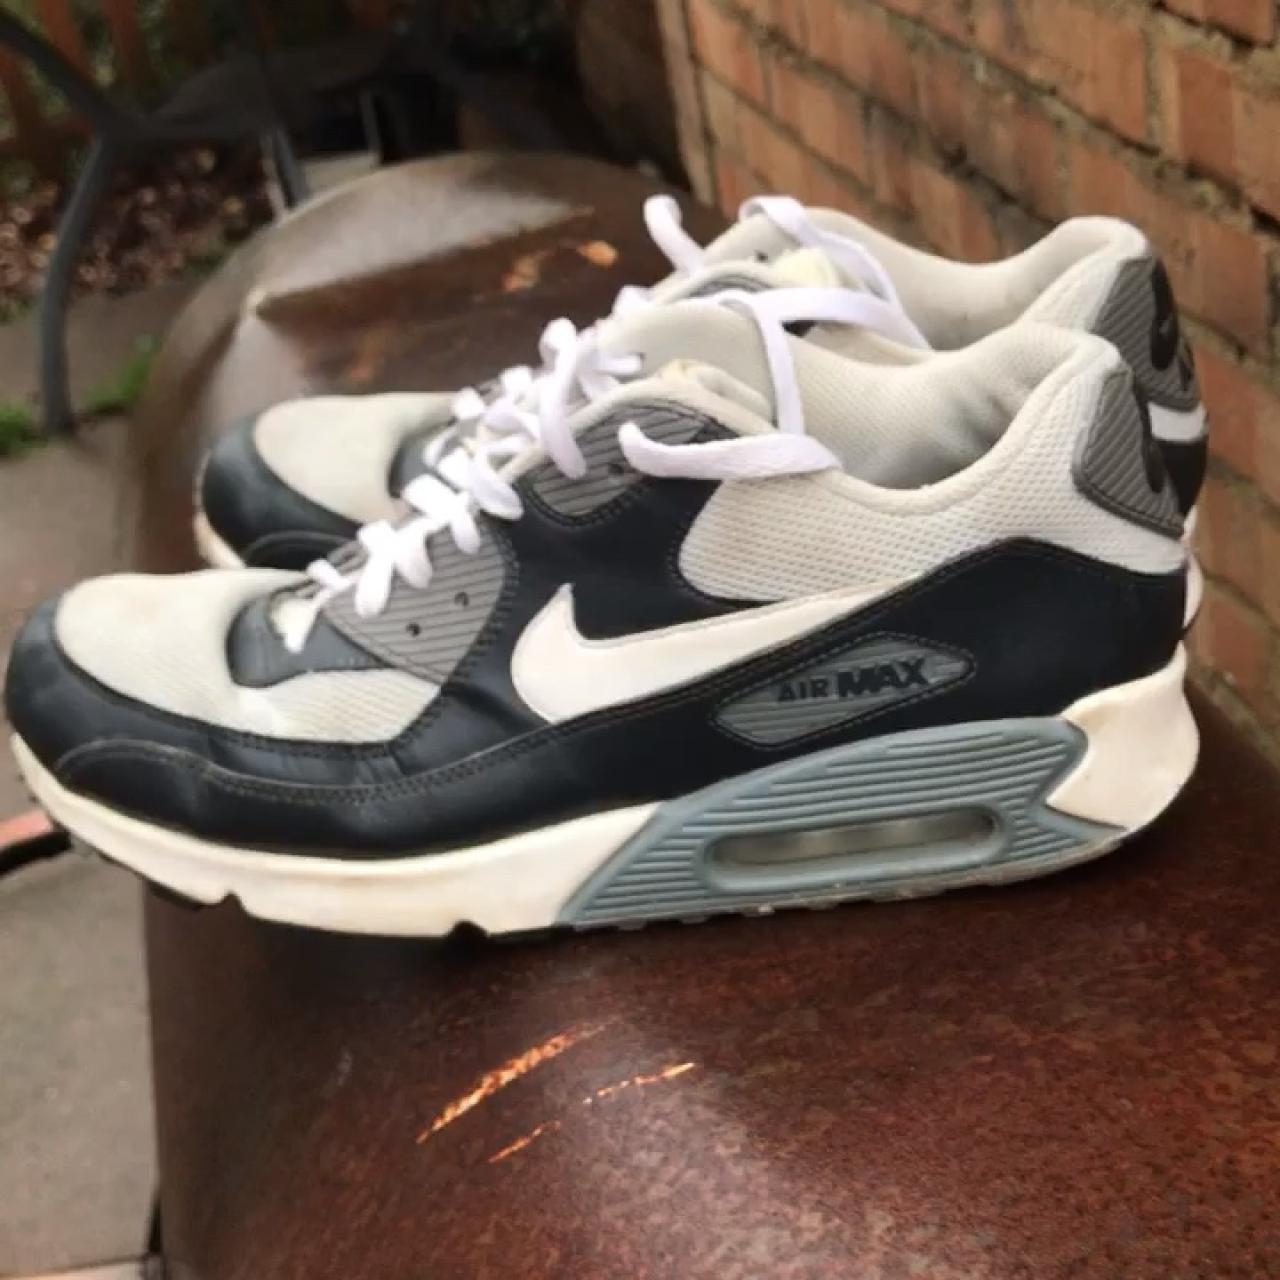 8bb6c56611 @otoole_. 7 months ago. Wolverhampton, United Kingdom. vintage nike airmax  90s in grey colourway. these shoes ...